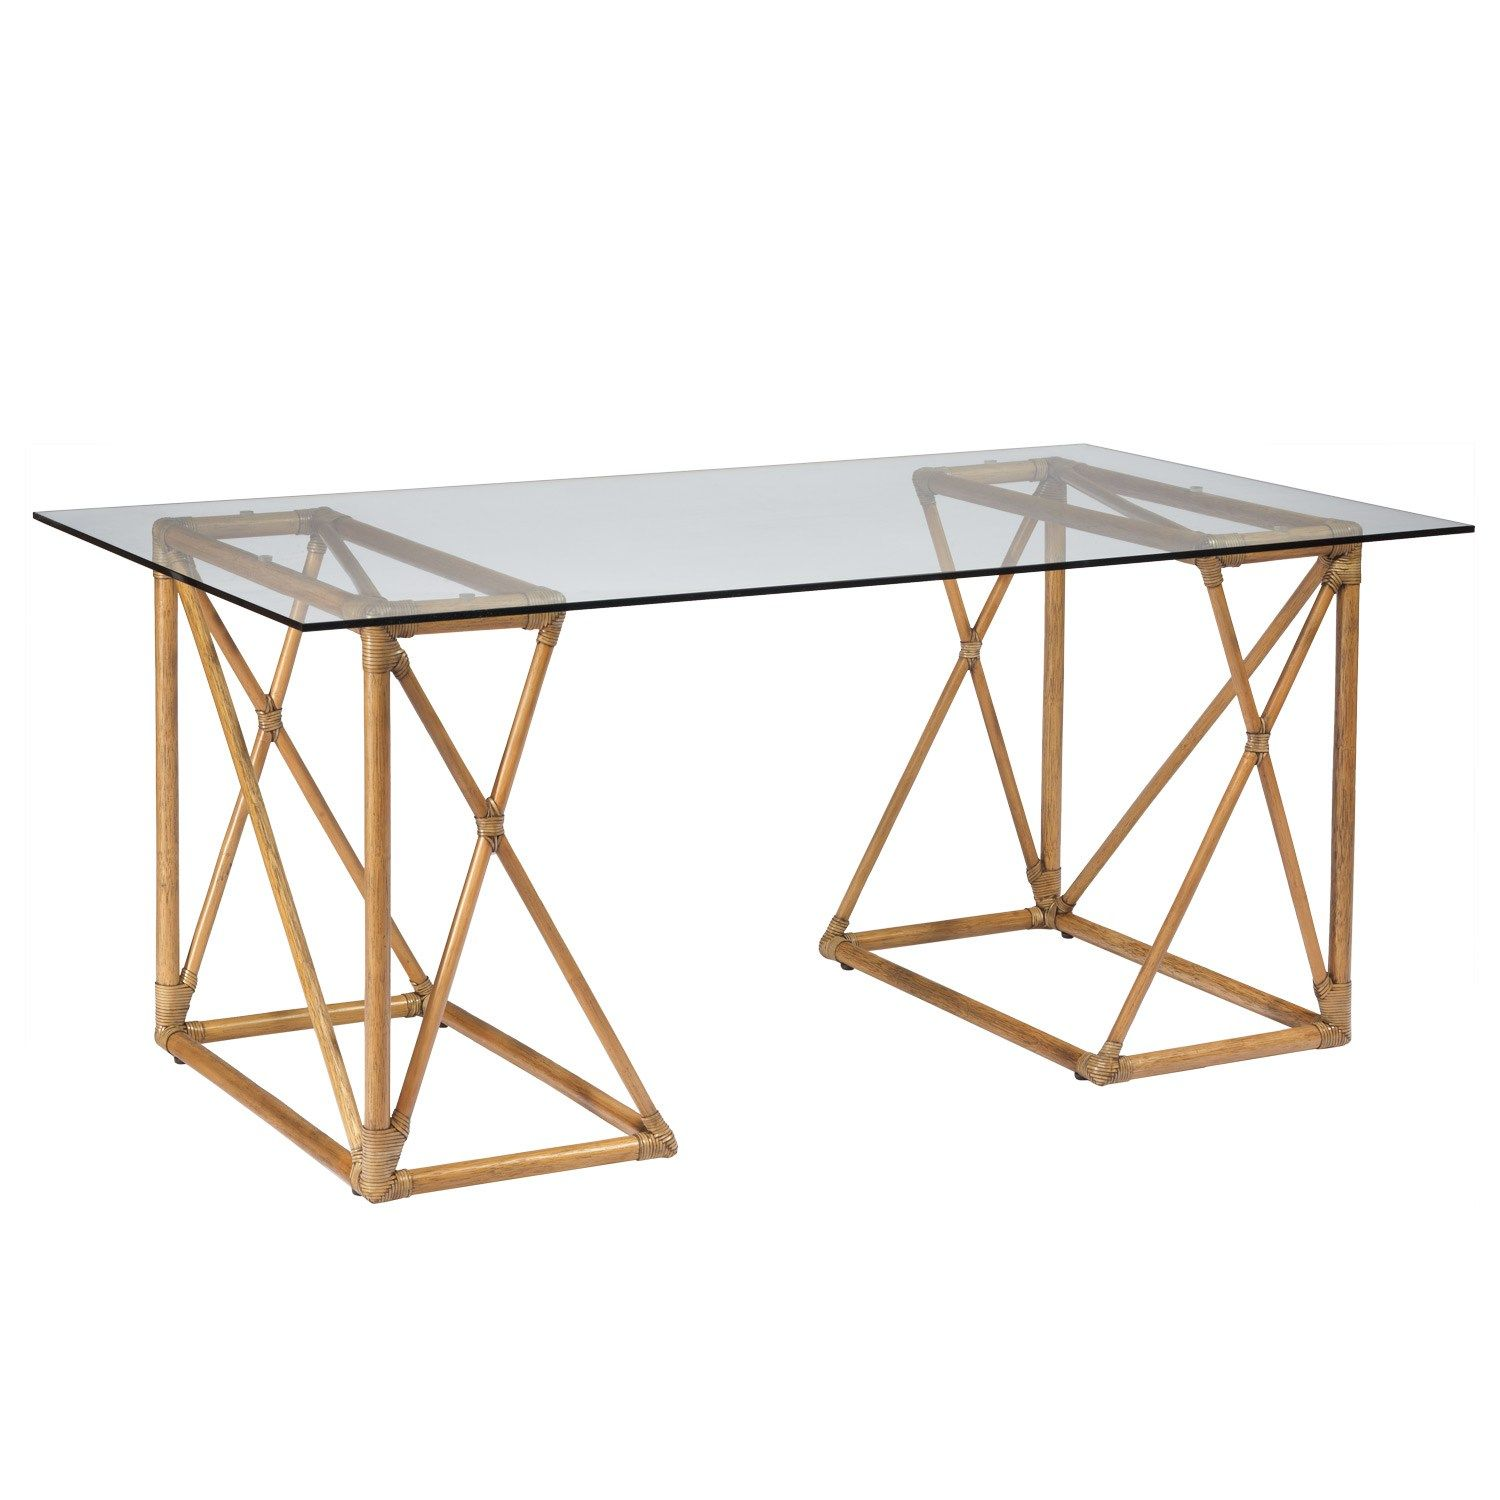 designs of office tables classic this angular nutmeg brown trestle furnishing arranges in two positions for unique desk or small table sustainablygrown rattan riva trestle desk furniture pinterest desk desks and